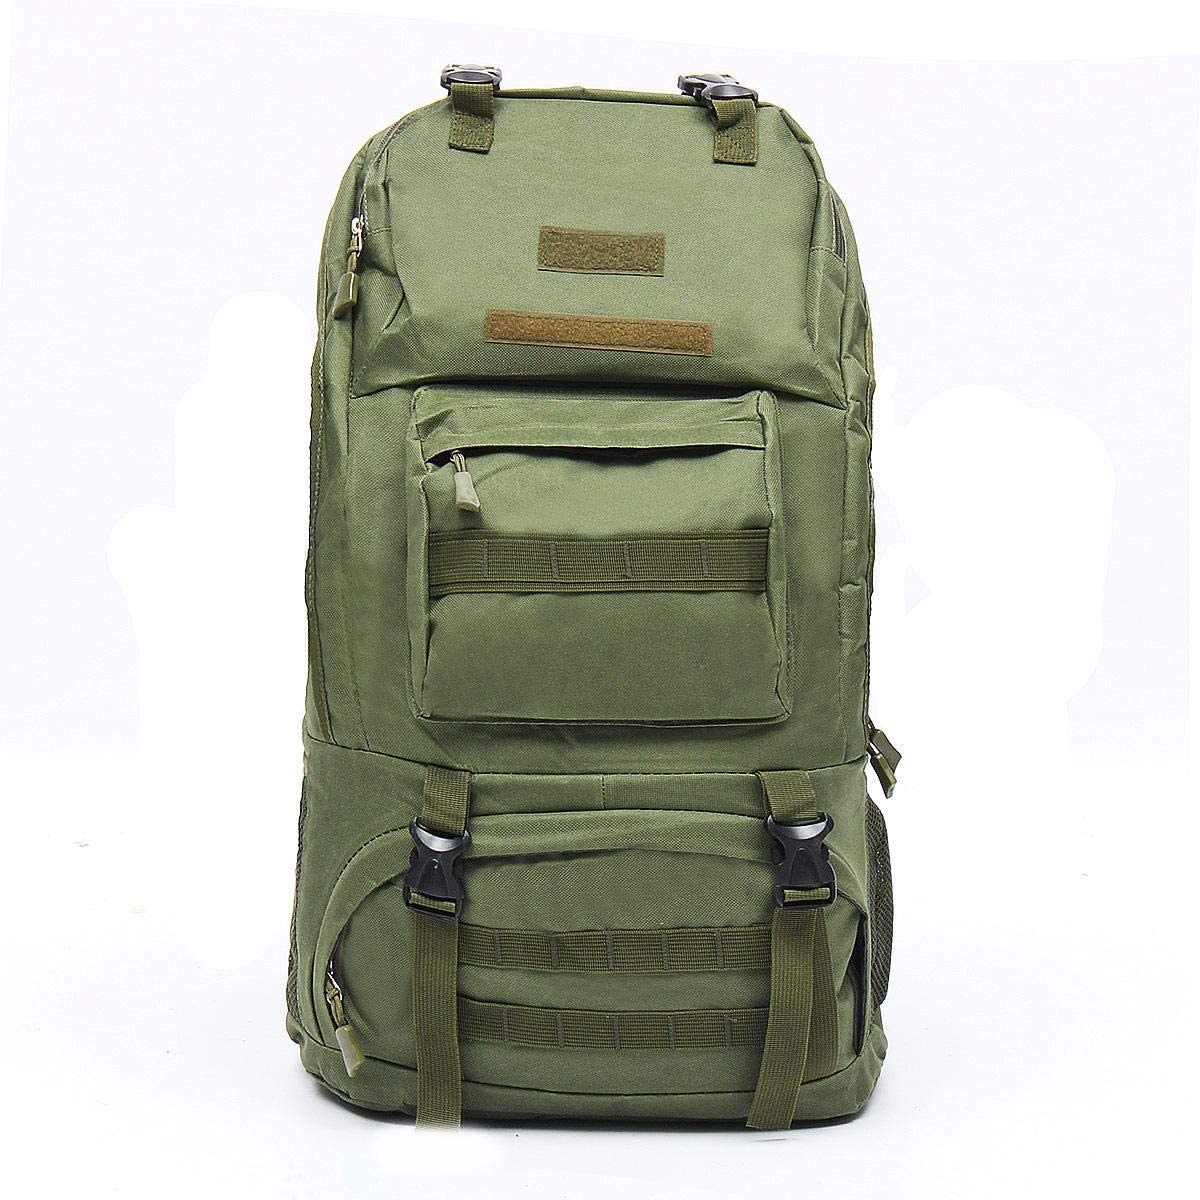 A-hyt Bombing new work Perfect Fashion 65L Outside Max 55% OFF Tactical Ba Military Rucksacks